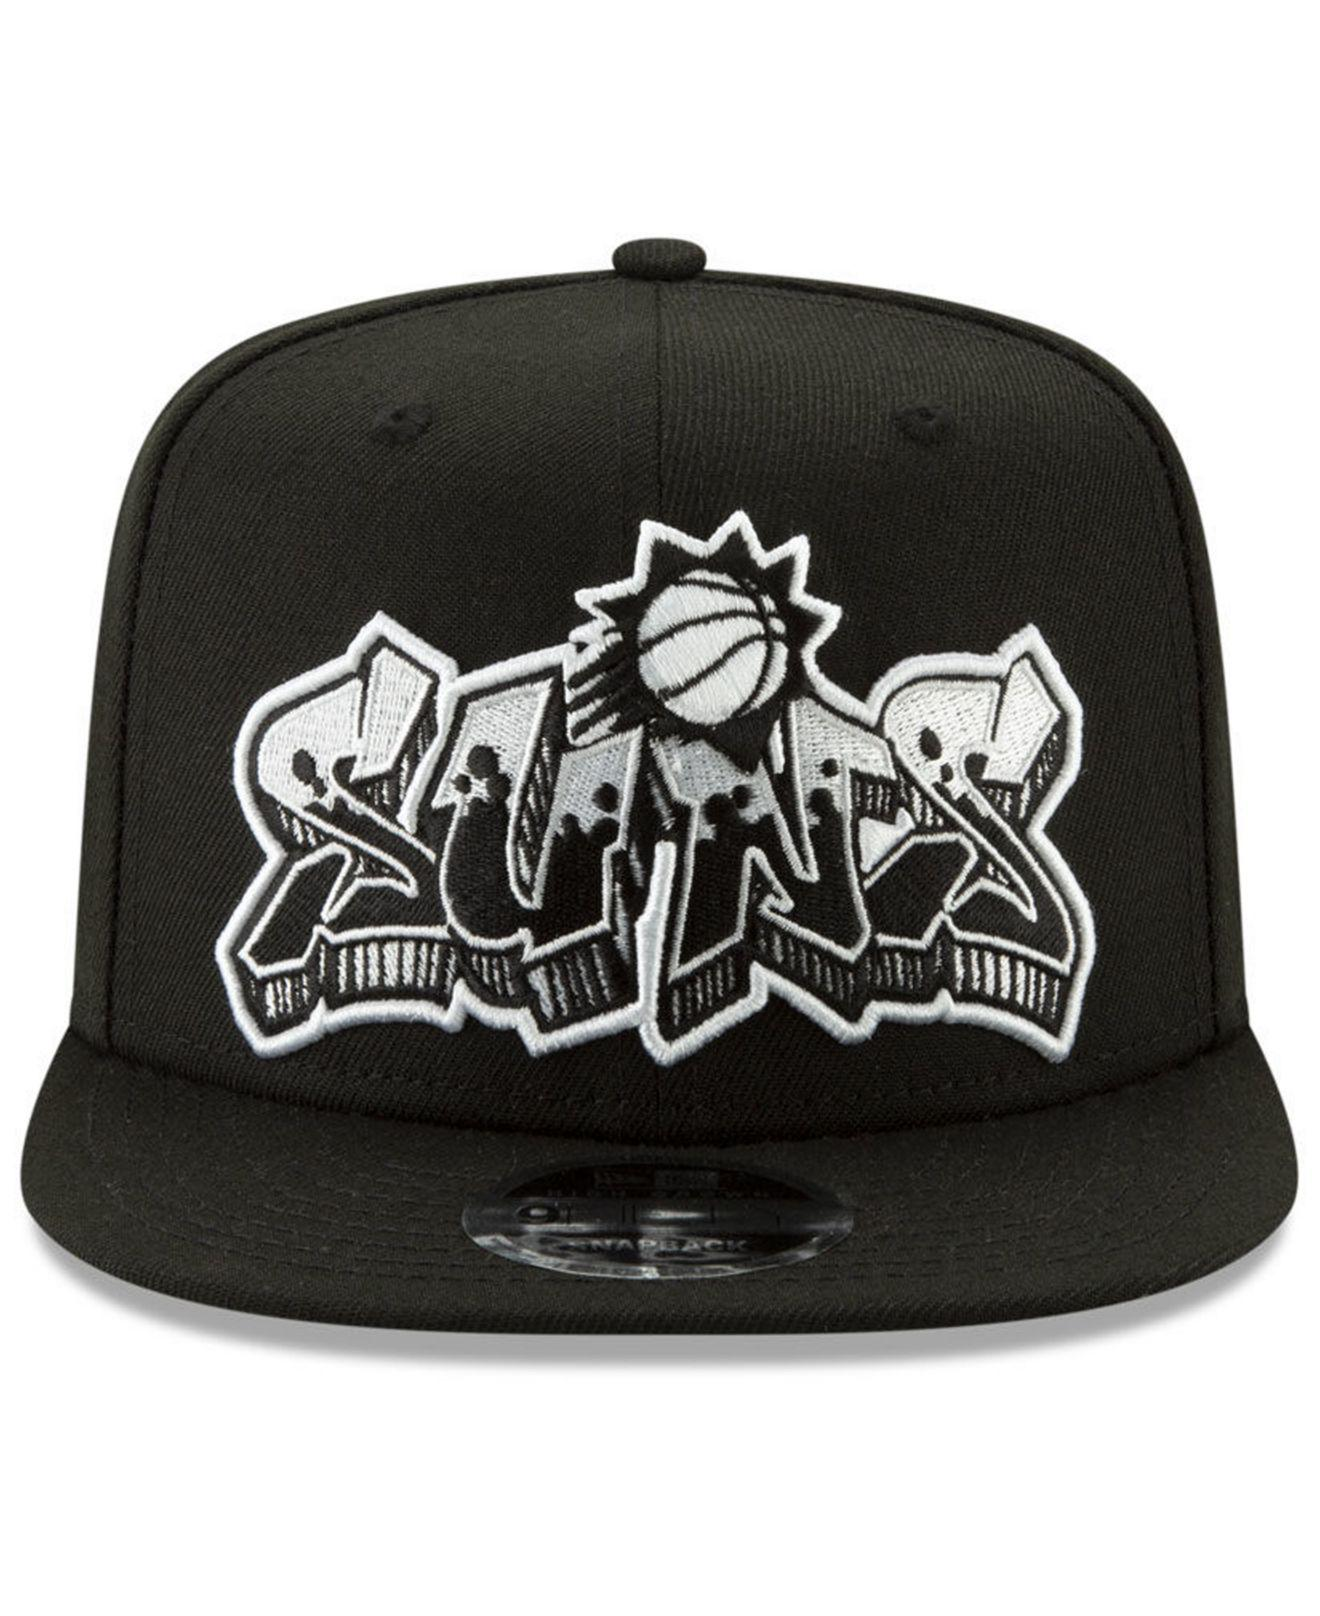 size 40 9b59c 35623 get lyst ktz phoenix suns retroword black white 9fifty snapback cap in  black for men bb1e7